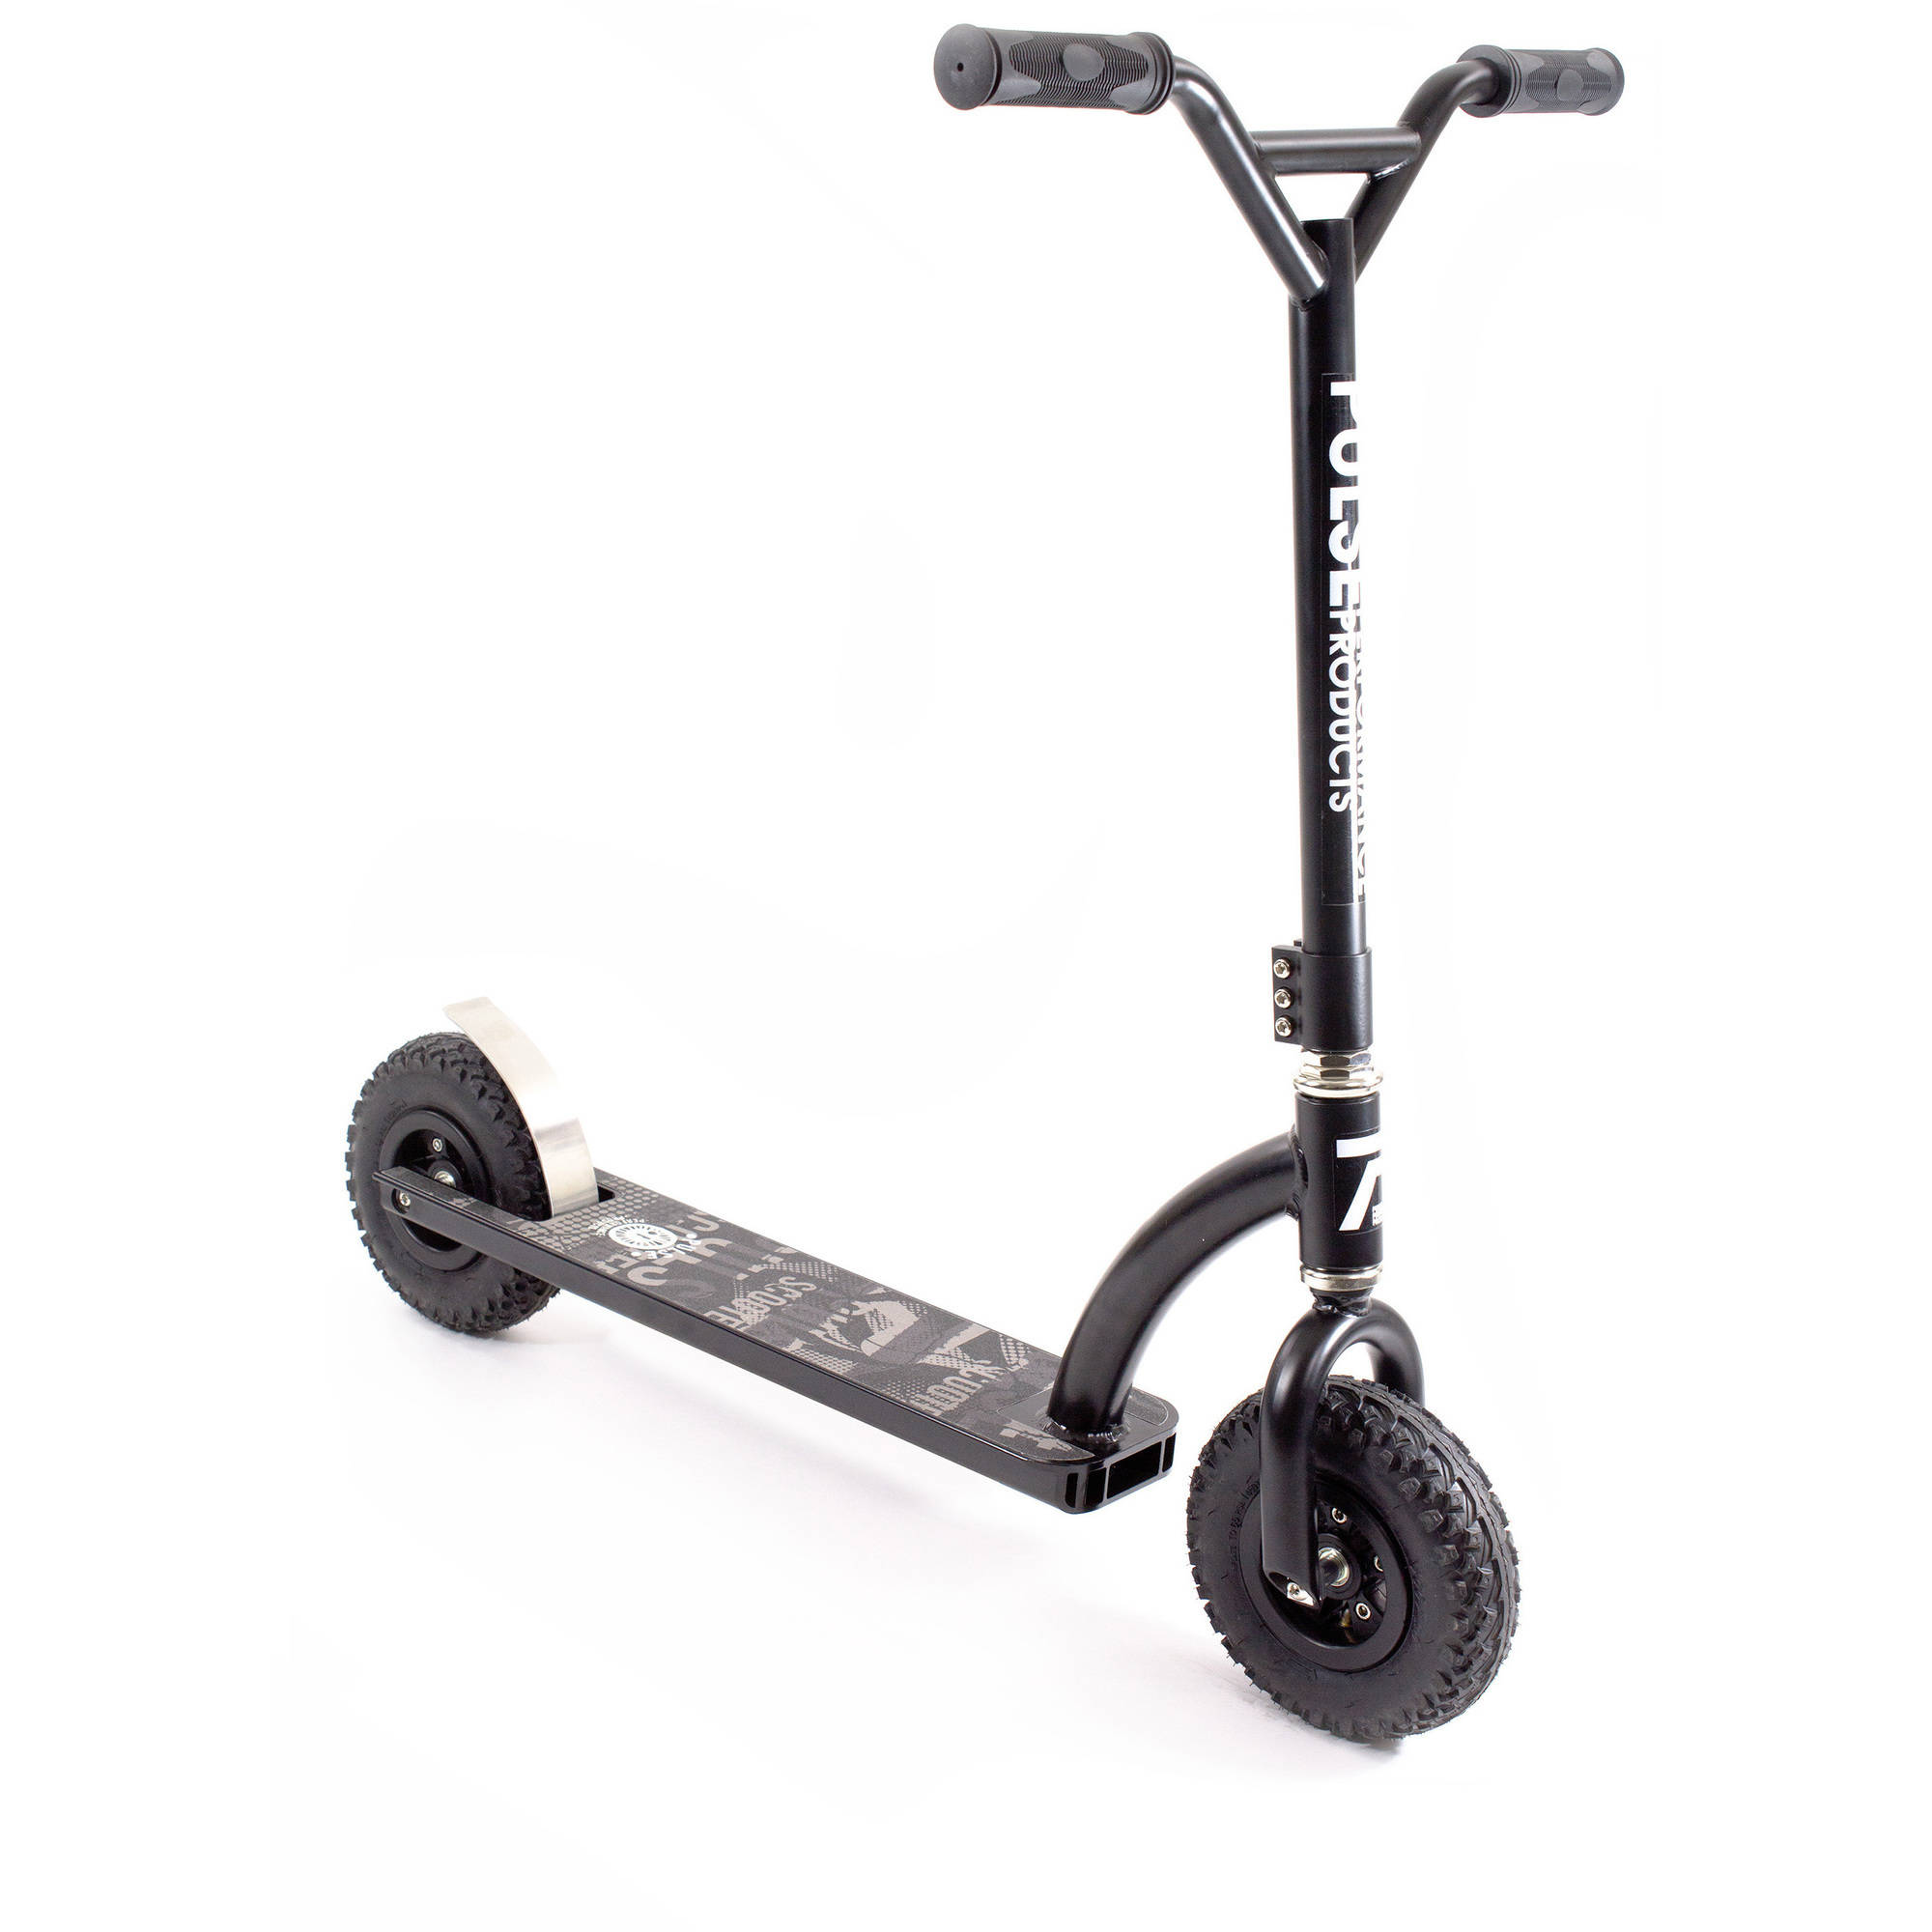 Freestyle Dirt Scooter Knobby Tires Foot Brake Outdoor